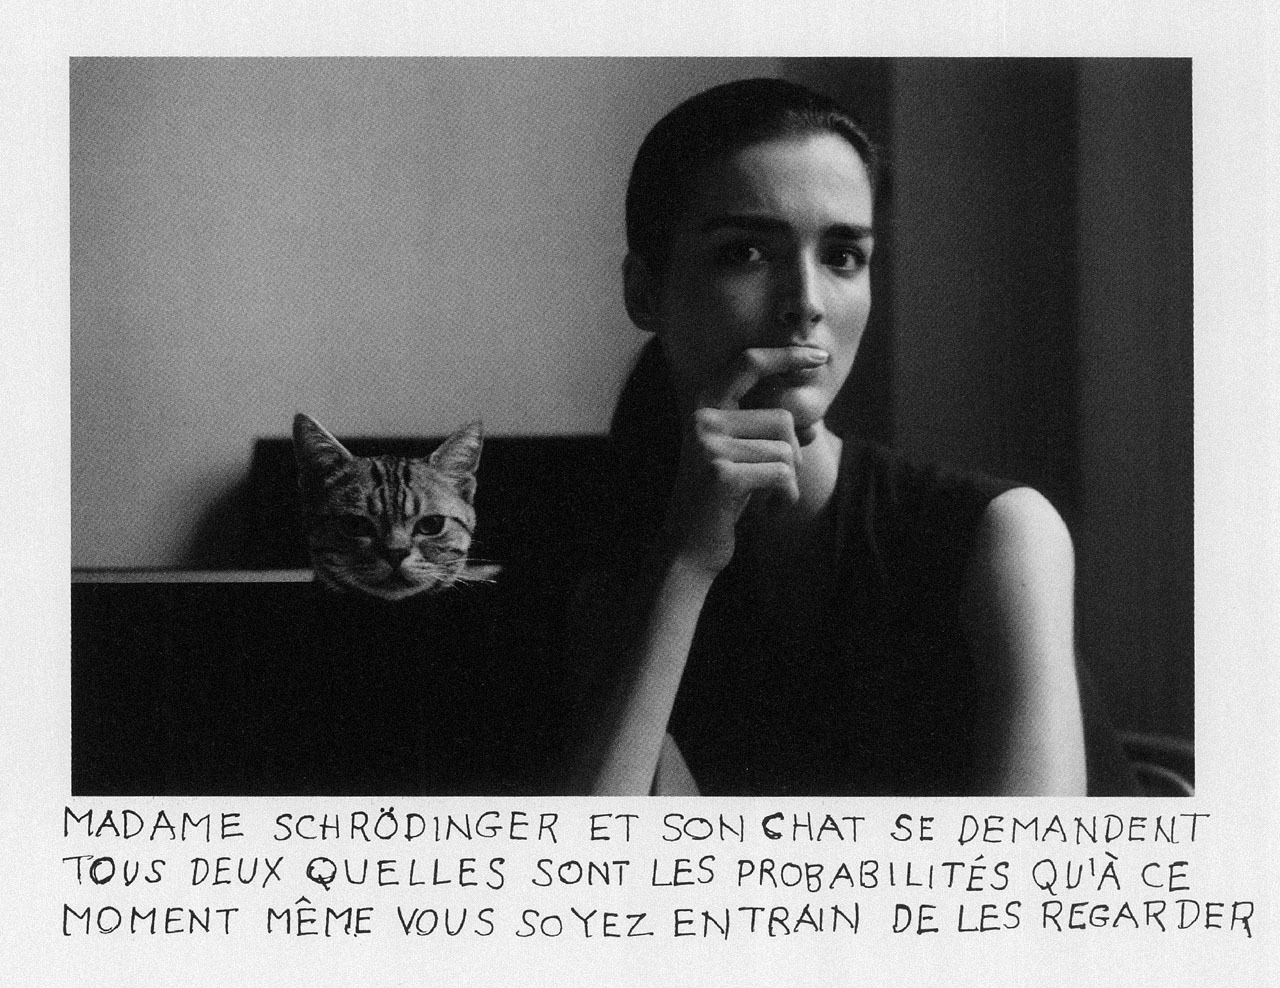 Le chat de Madame Schrödinger, Les Publications, Condé Nast Duane Michals circa 1998  Madame Schrödinger and her cat both wonder what are the odds that at this very moment you are in the process of looking at them.